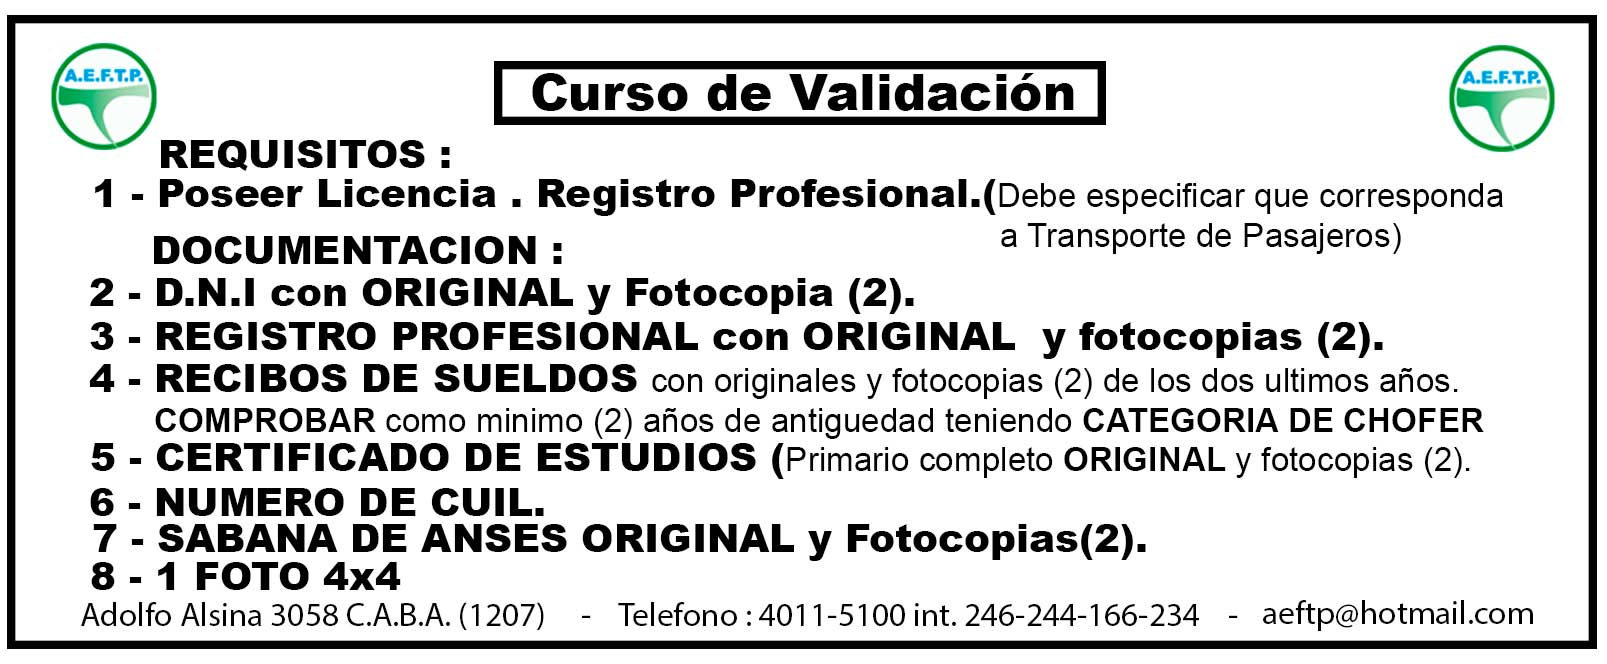 cartelito-de-requisitosVALIDACION